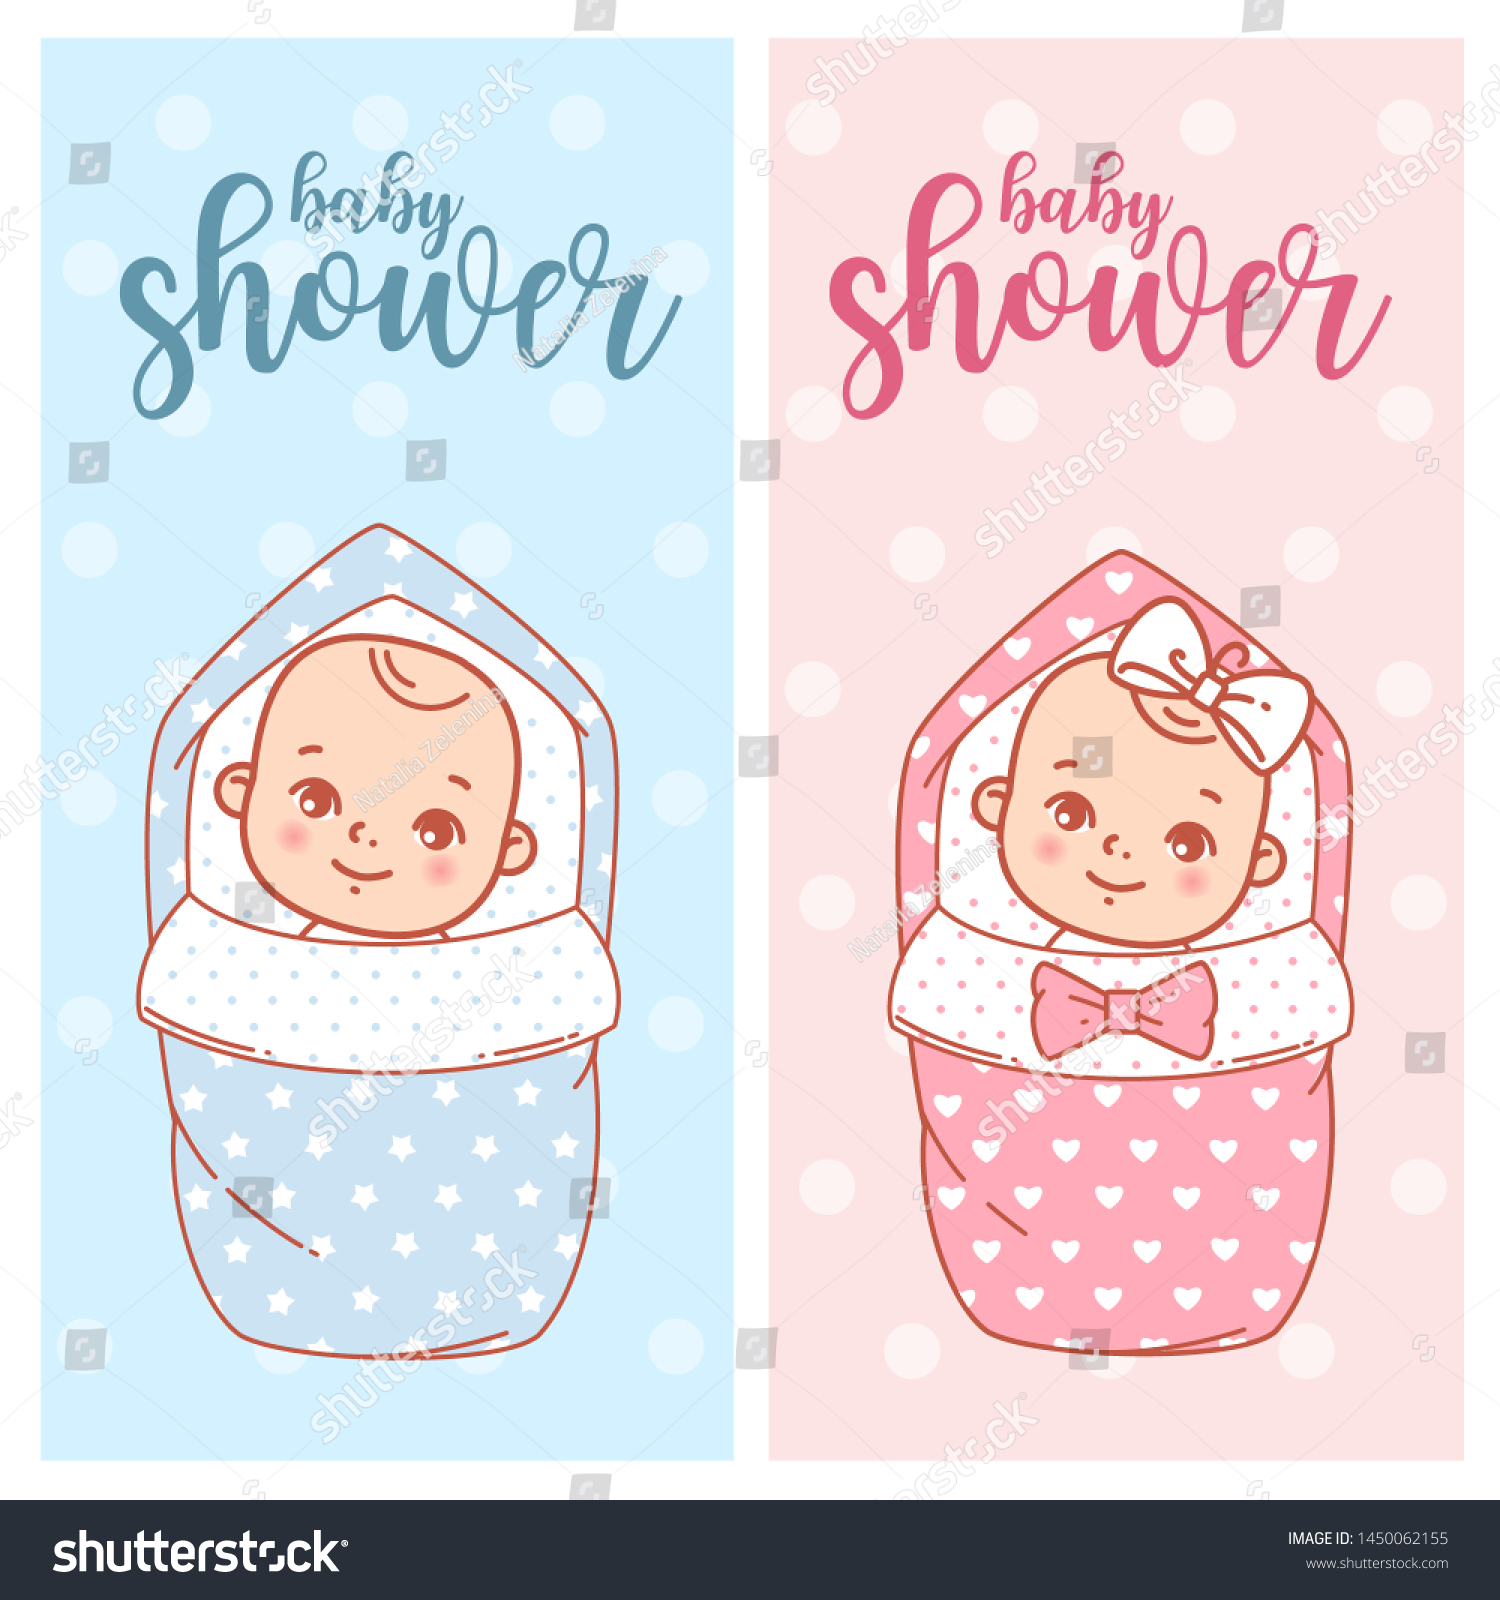 Baby Shower Design Newborn Baby Girl Stock Vector Royalty Free 1450062155